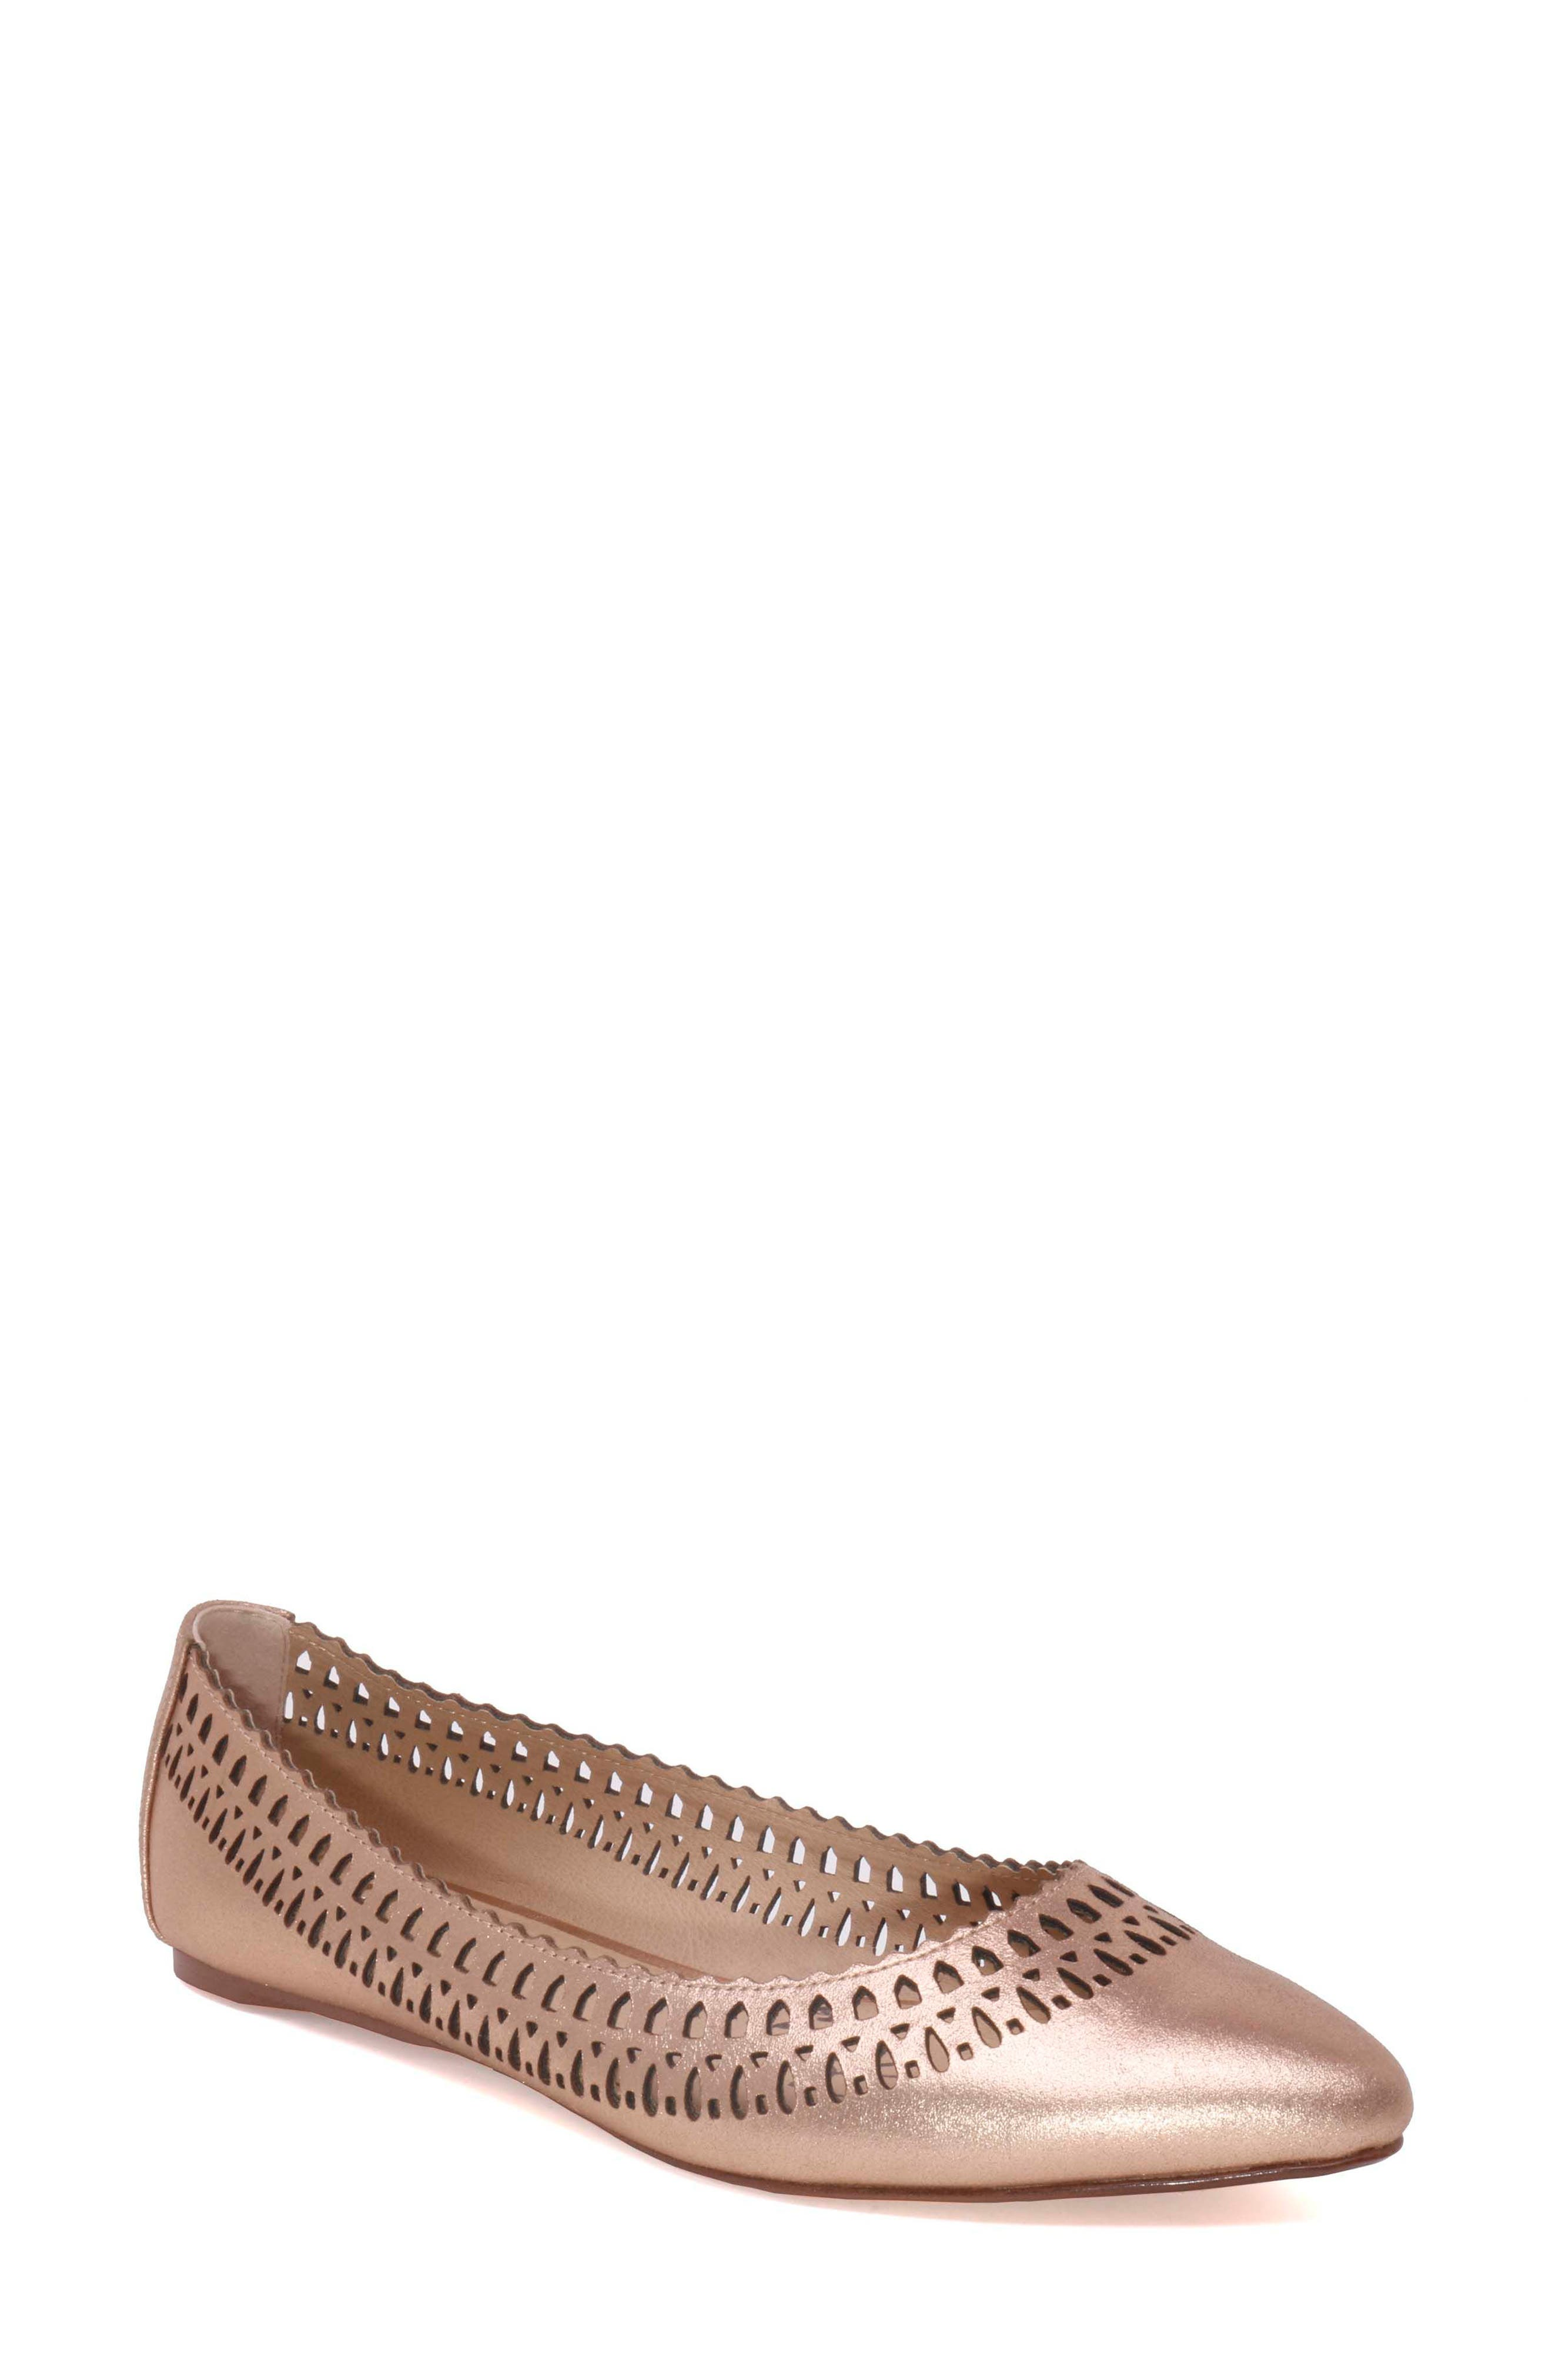 Cora Flat,                         Main,                         color, Rose Gold Leather